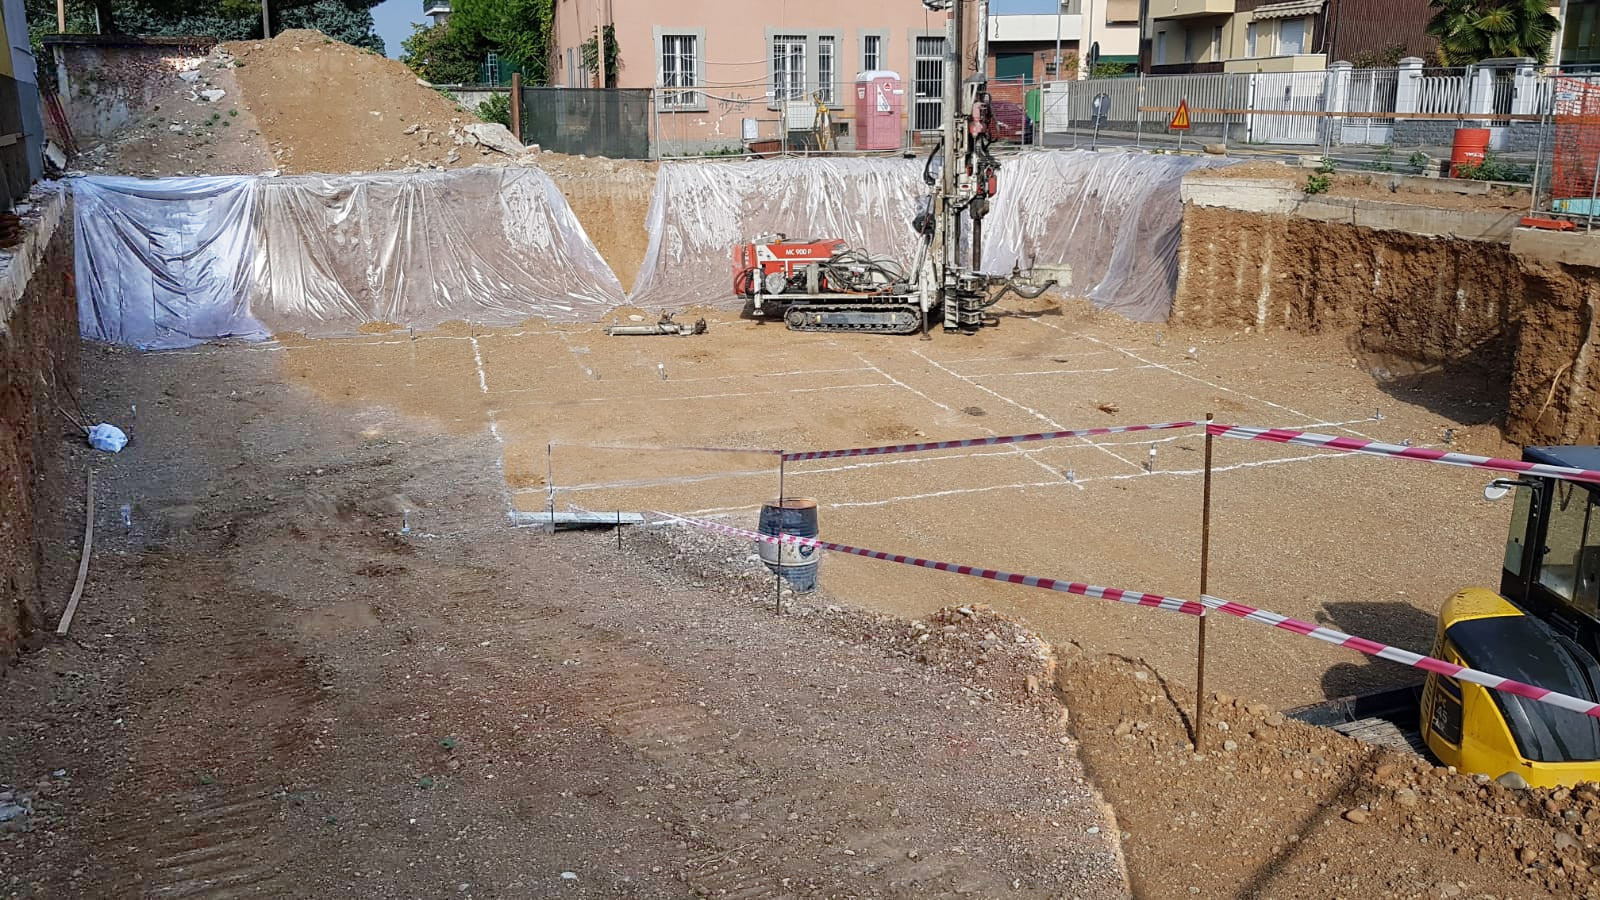 RHO Cantiere!